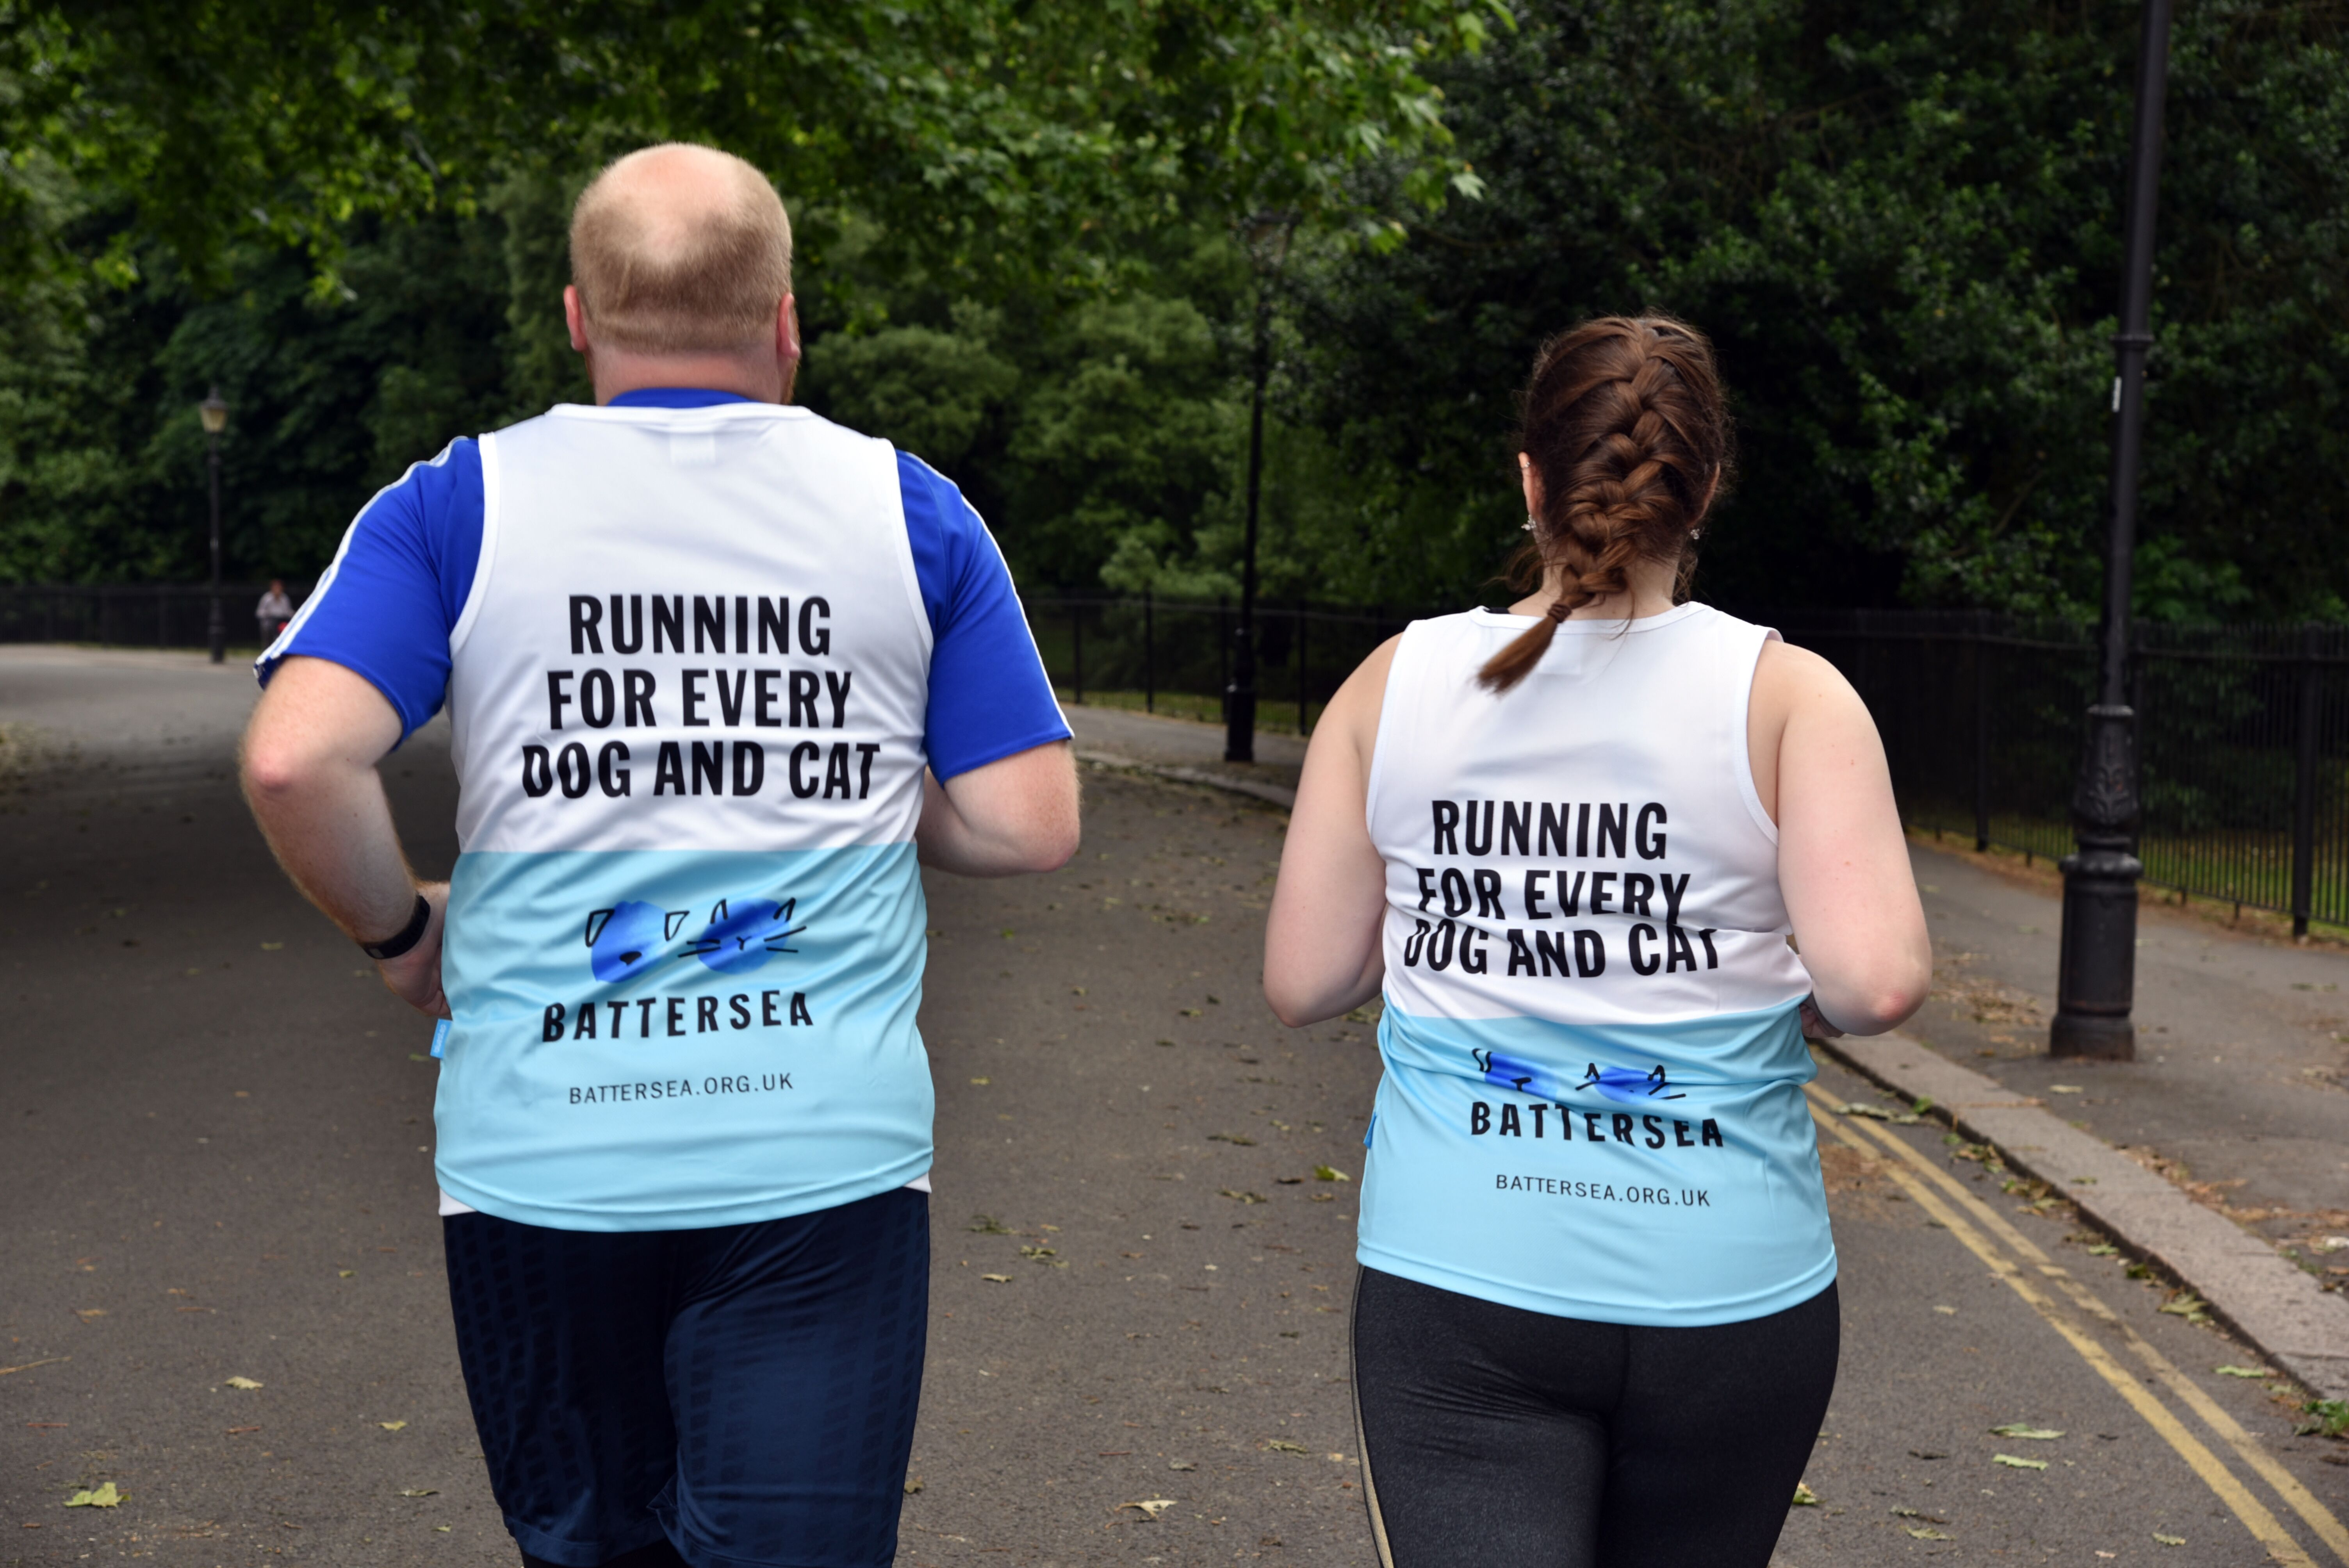 Running for every dog and cat